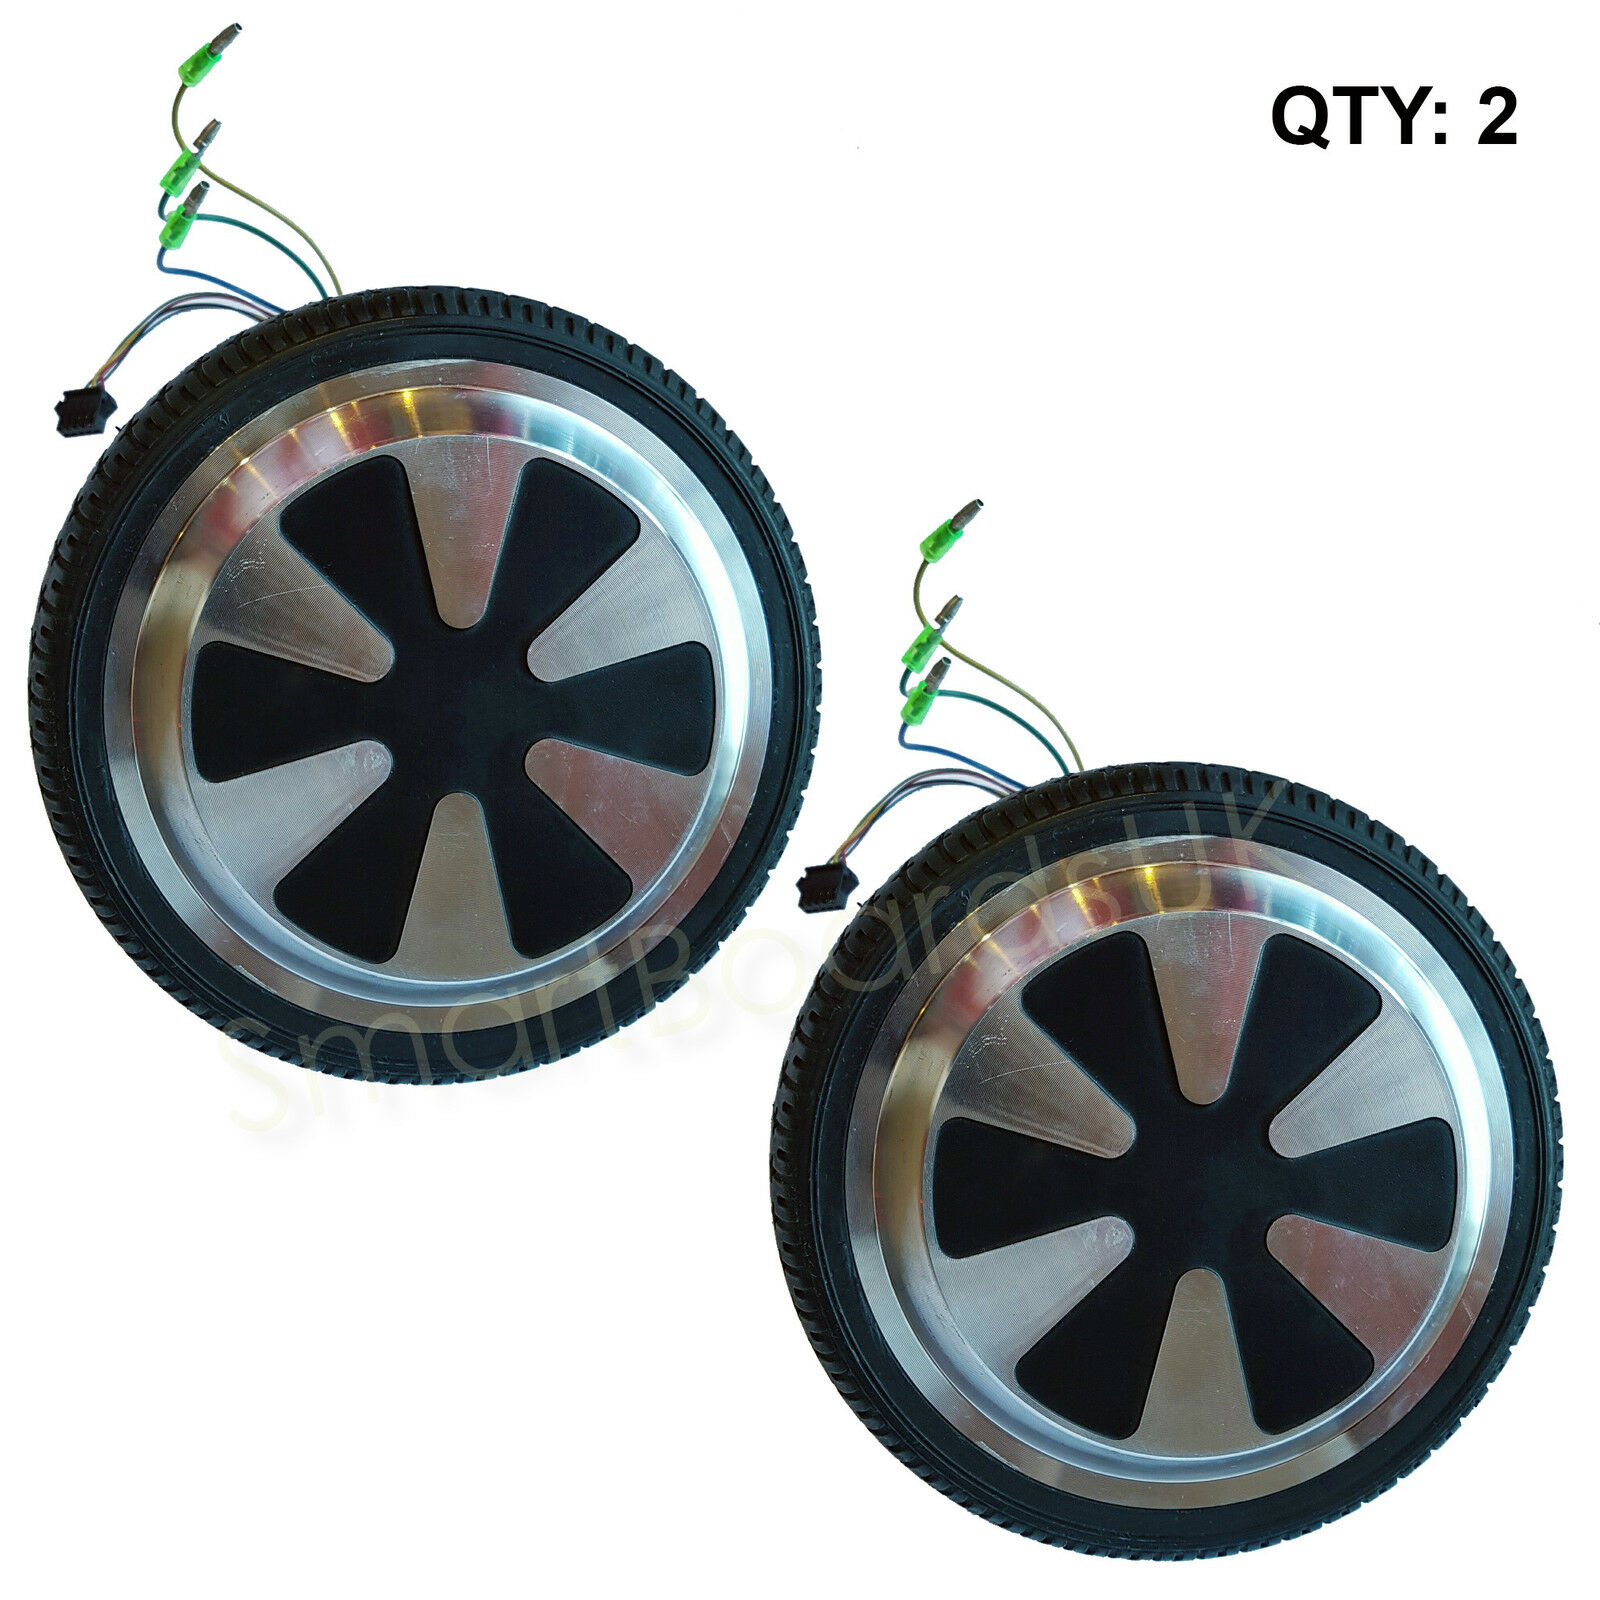 PAIR - Wheel   Motor for 6.5 Inch Hoverboard Parts, Sweg, Self Balance NEW